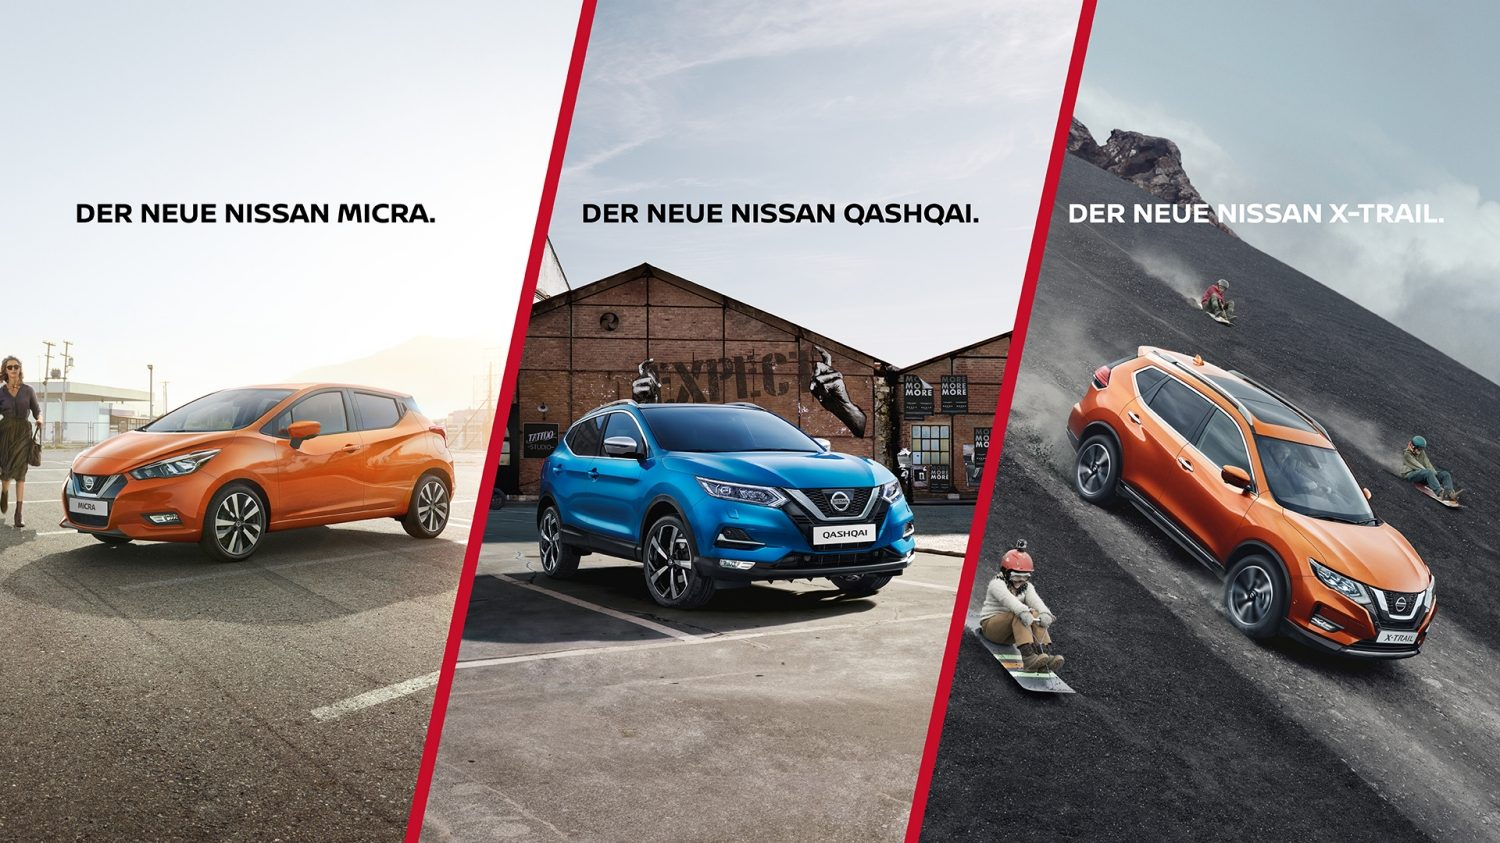 Experience Nissan - NISSAN on Tour